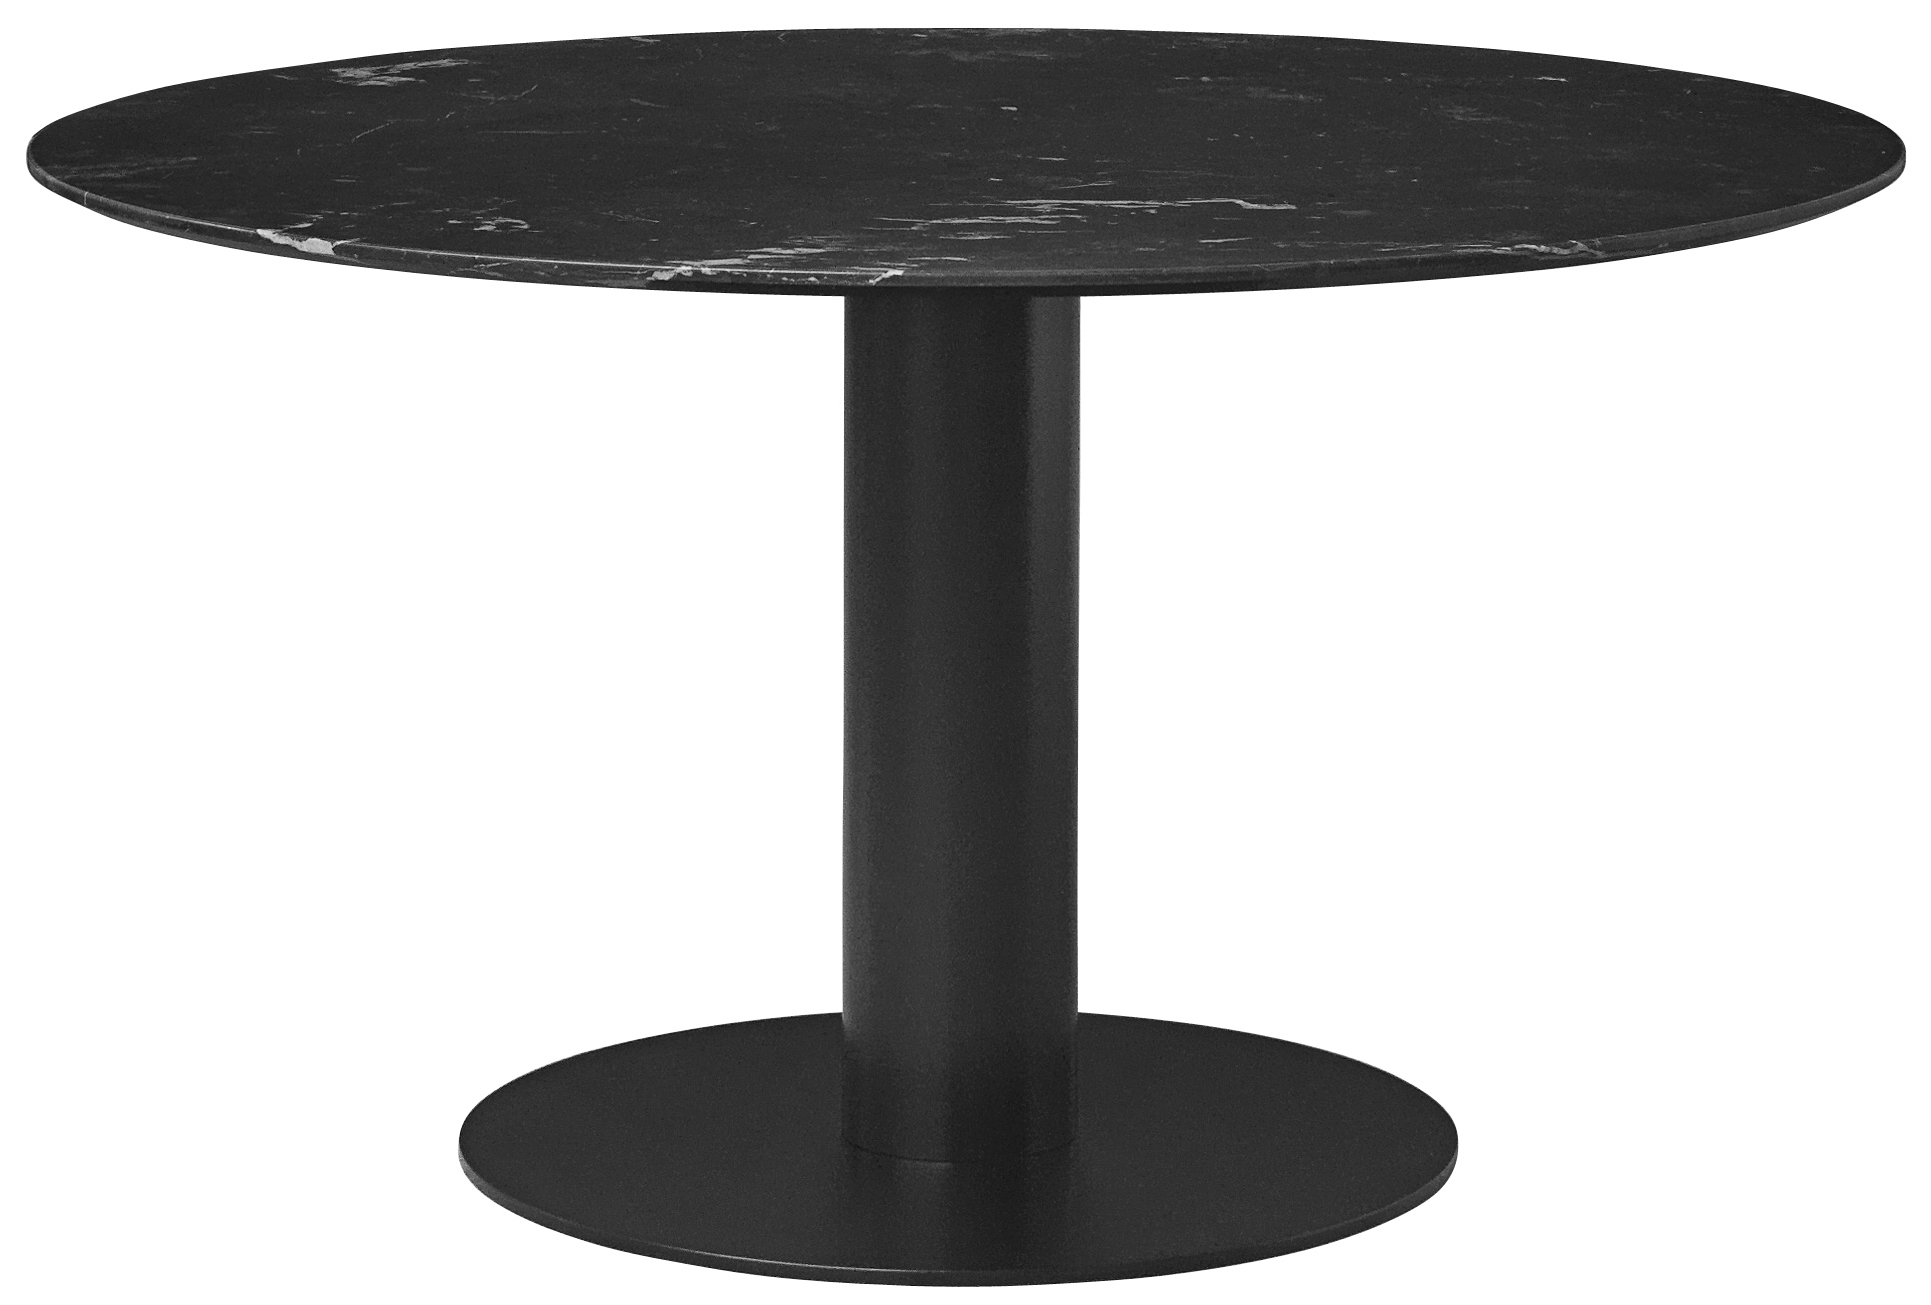 gubi round tables 2 0 marble table top gubi. Black Bedroom Furniture Sets. Home Design Ideas